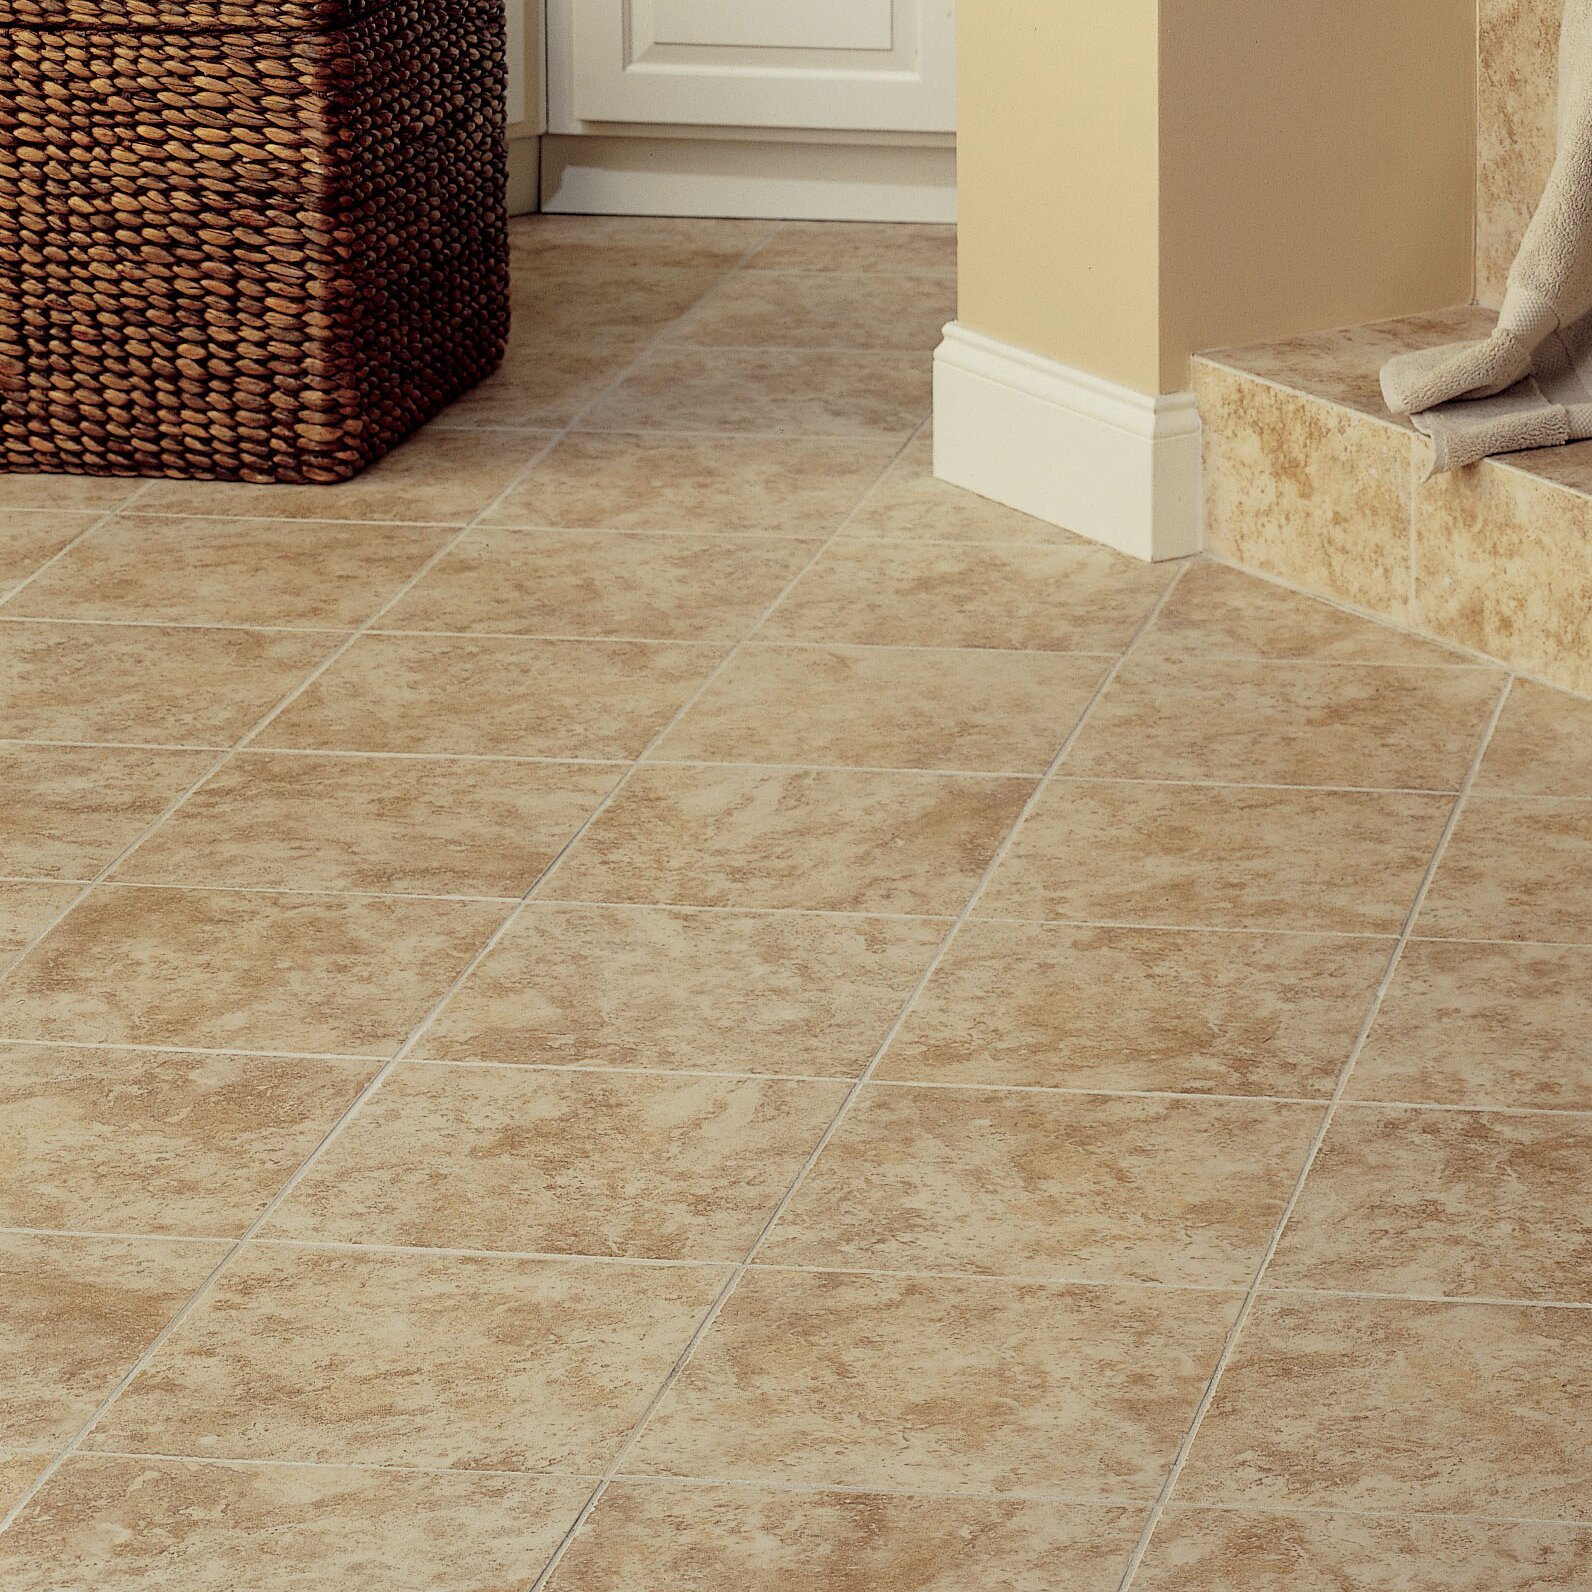 Mohawk ristano 9 x 12 ceramic field tile in noce allmodern for Mohawk flooring